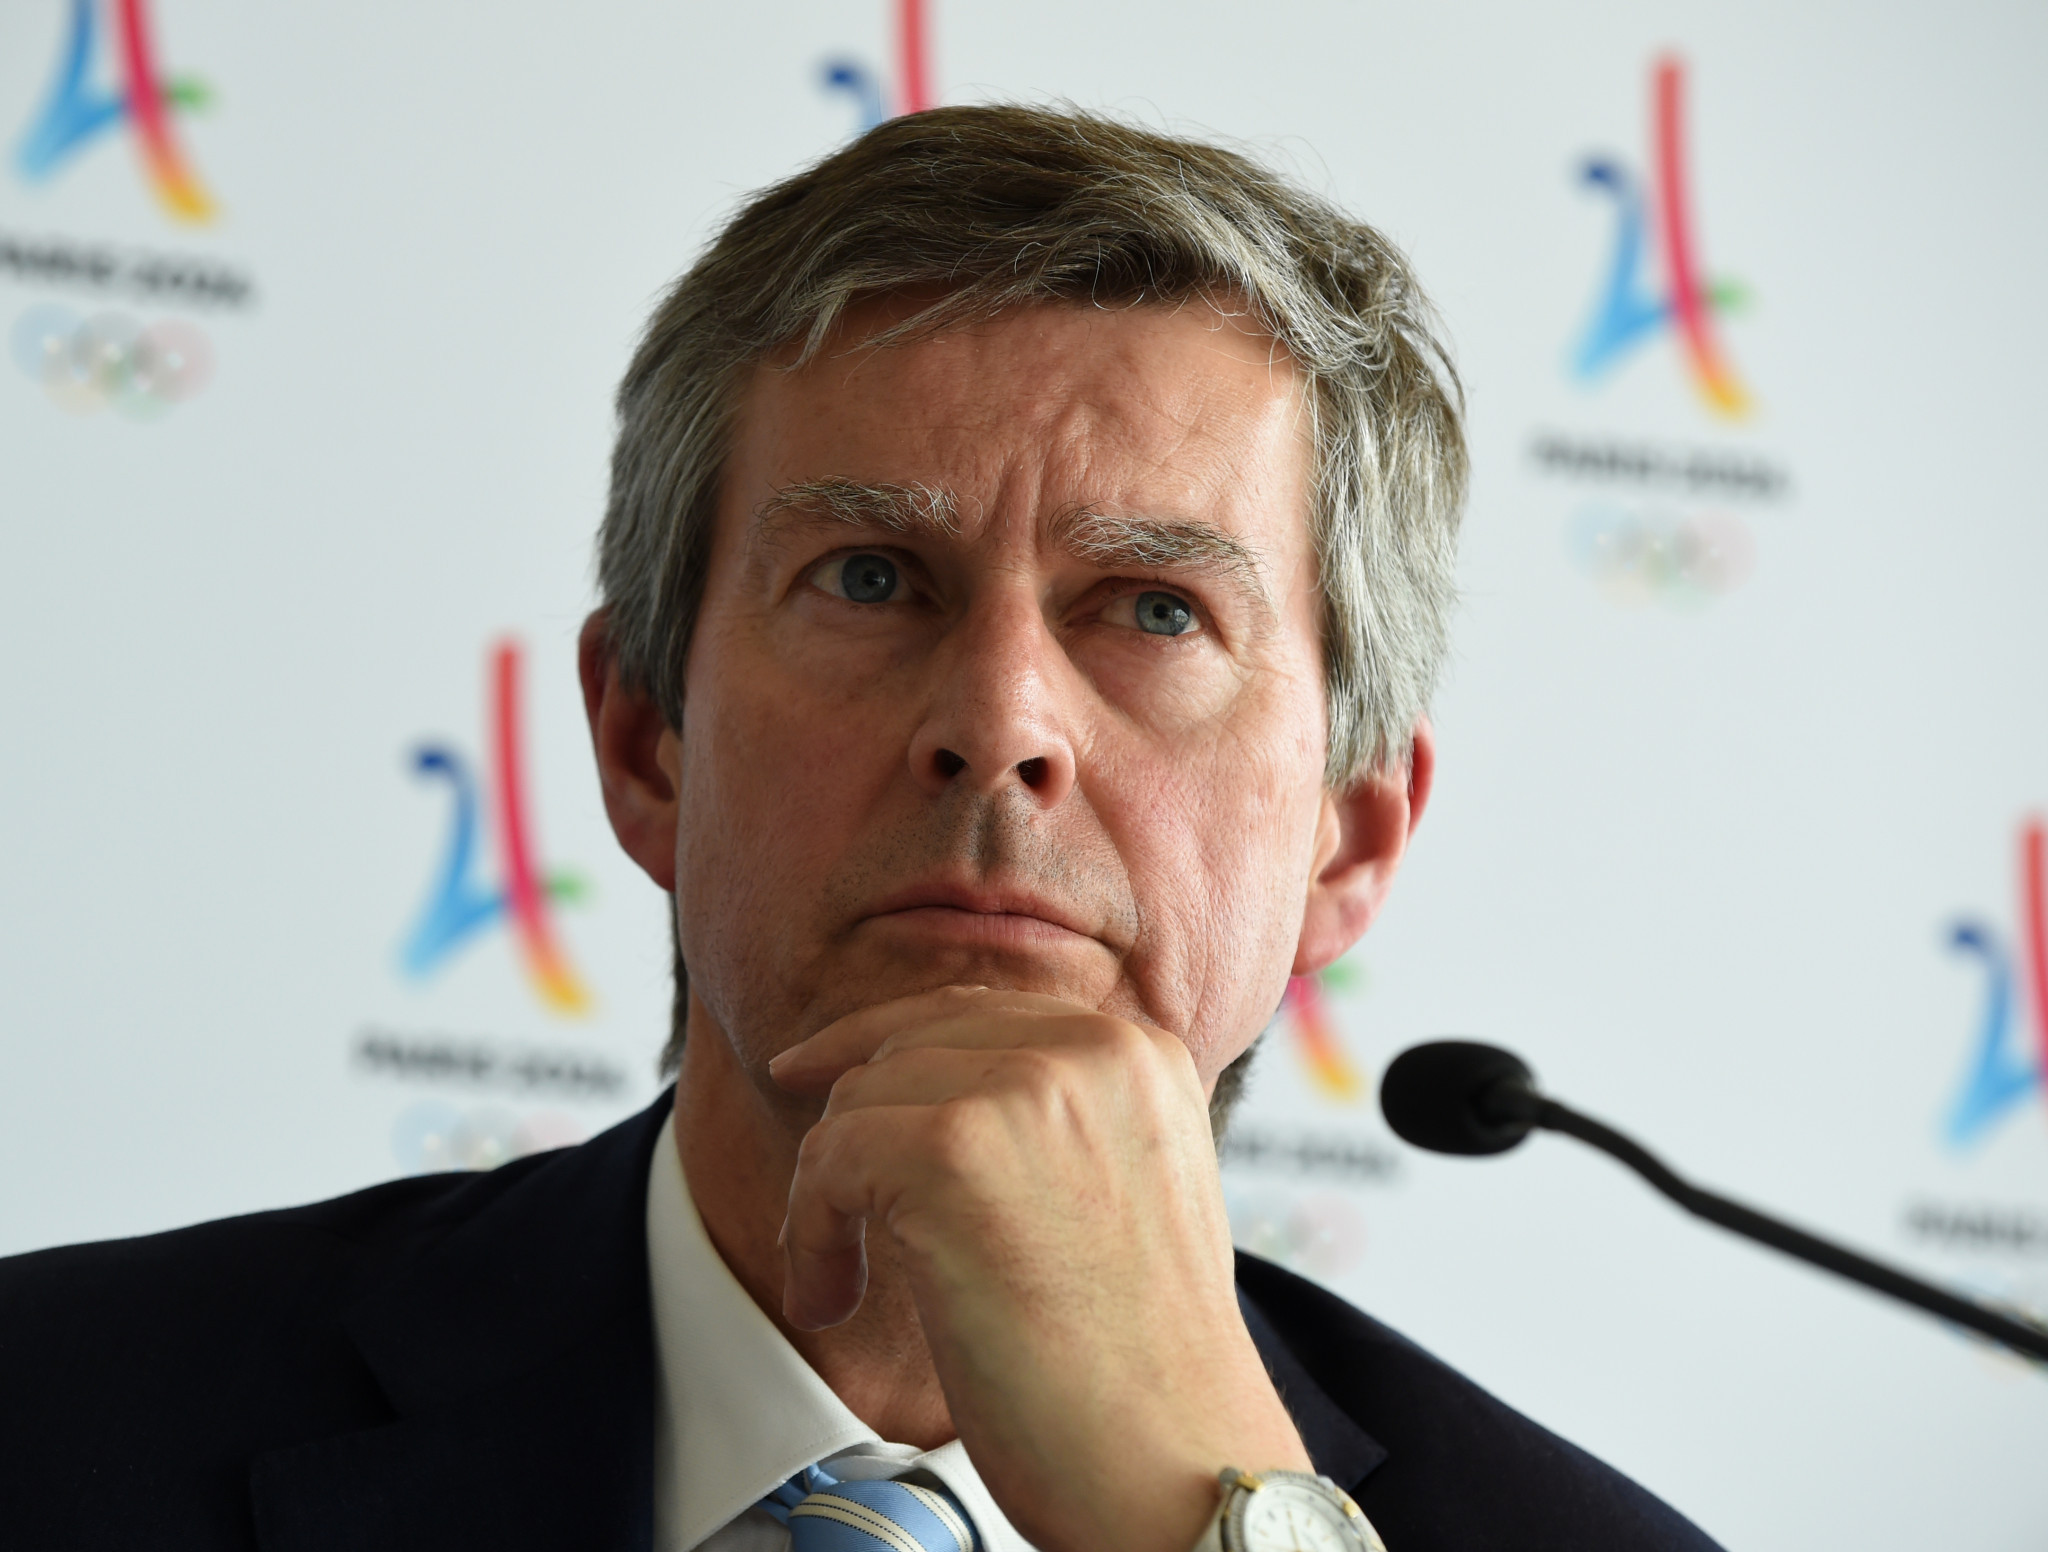 IOC Coordination Commission set to hold fourth meeting with Paris 2024